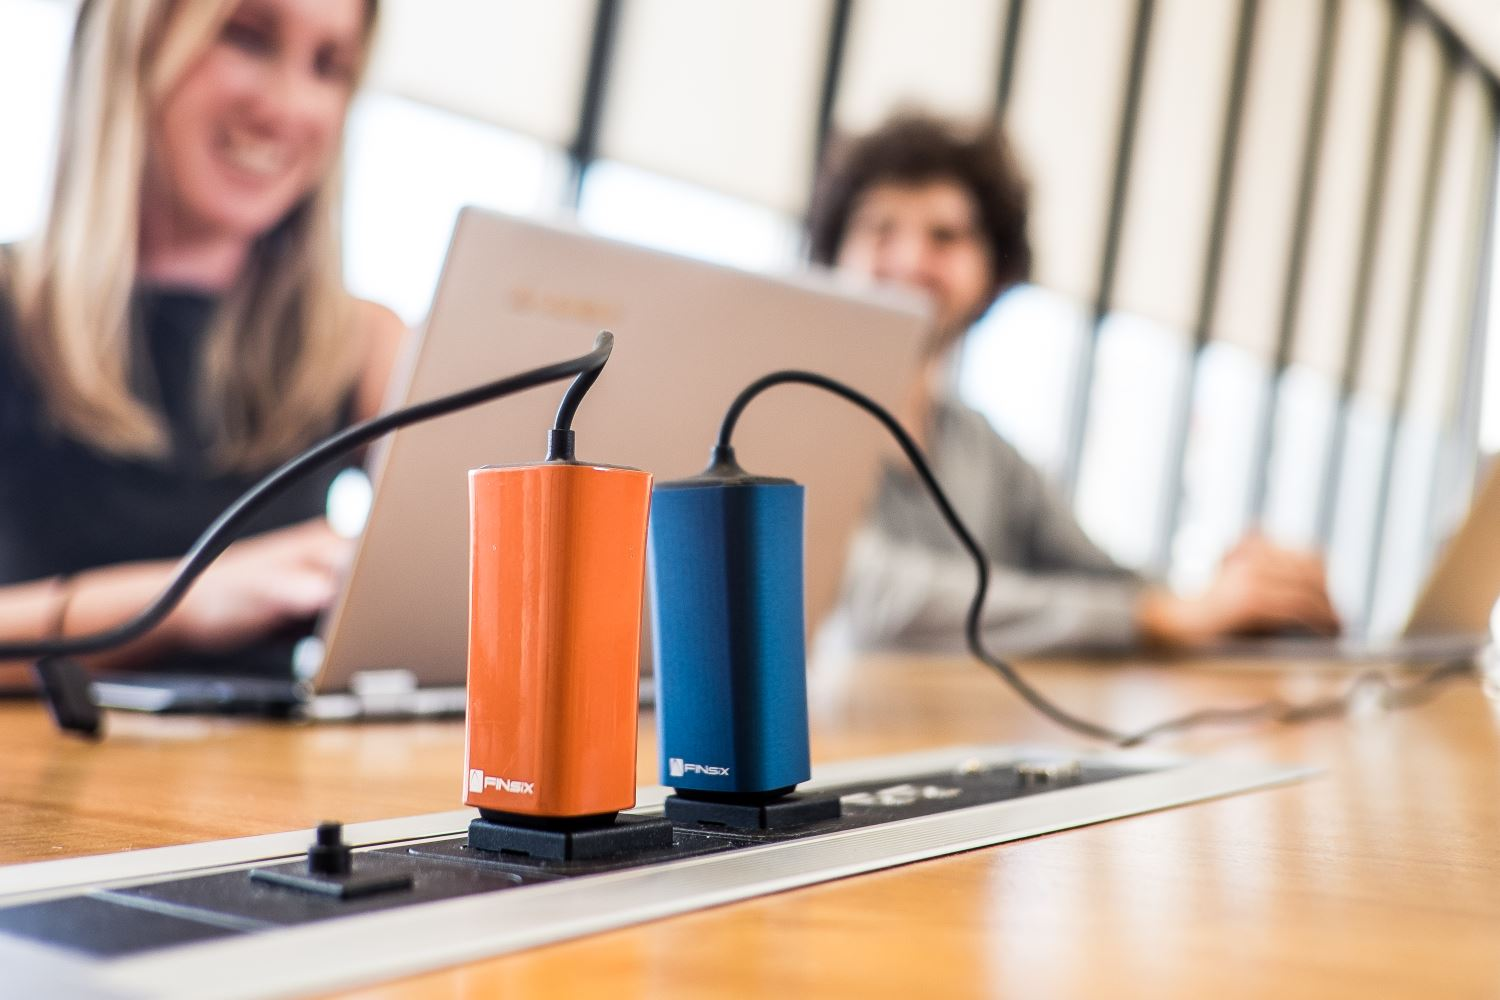 The FINsix Dart is a 65-watt laptop charger that's about the size of a cell phone charger.